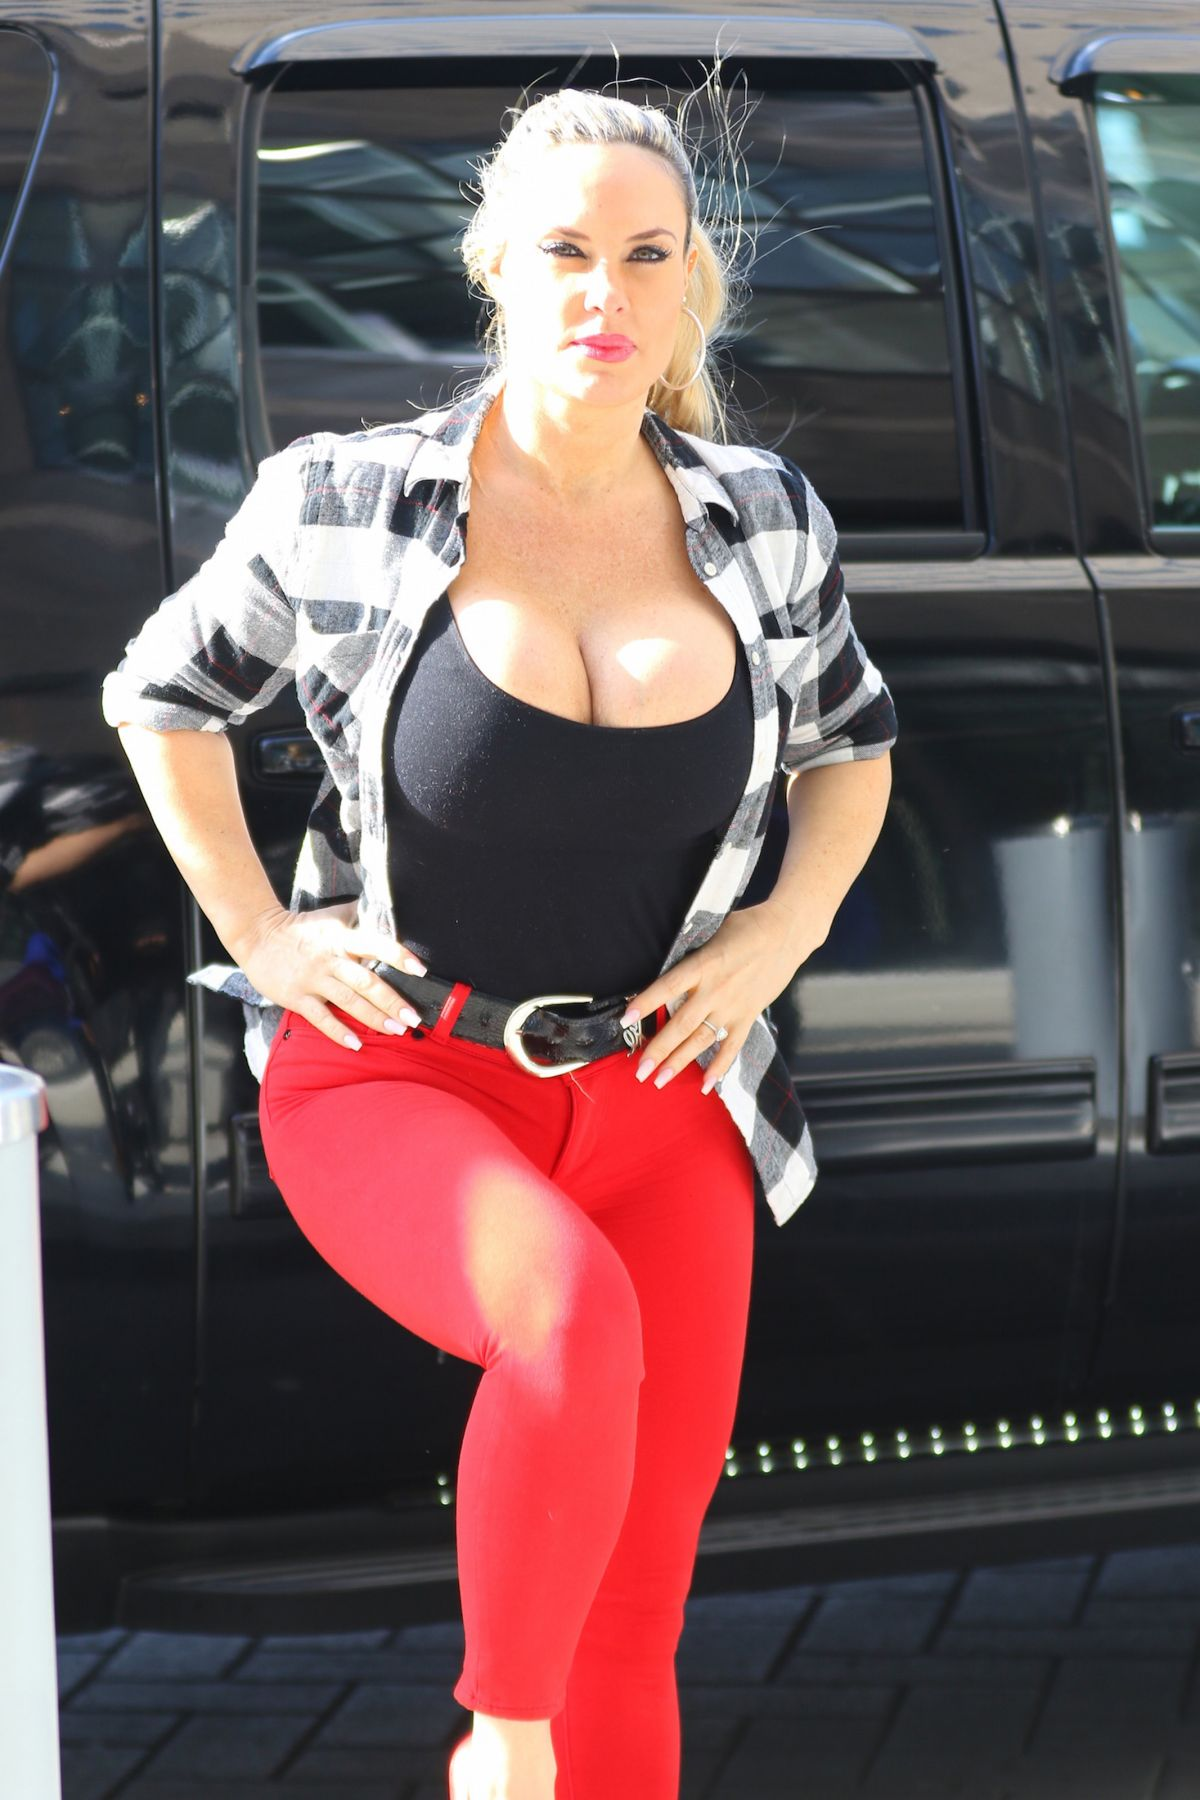 Sexual Footage Of Coco Austin